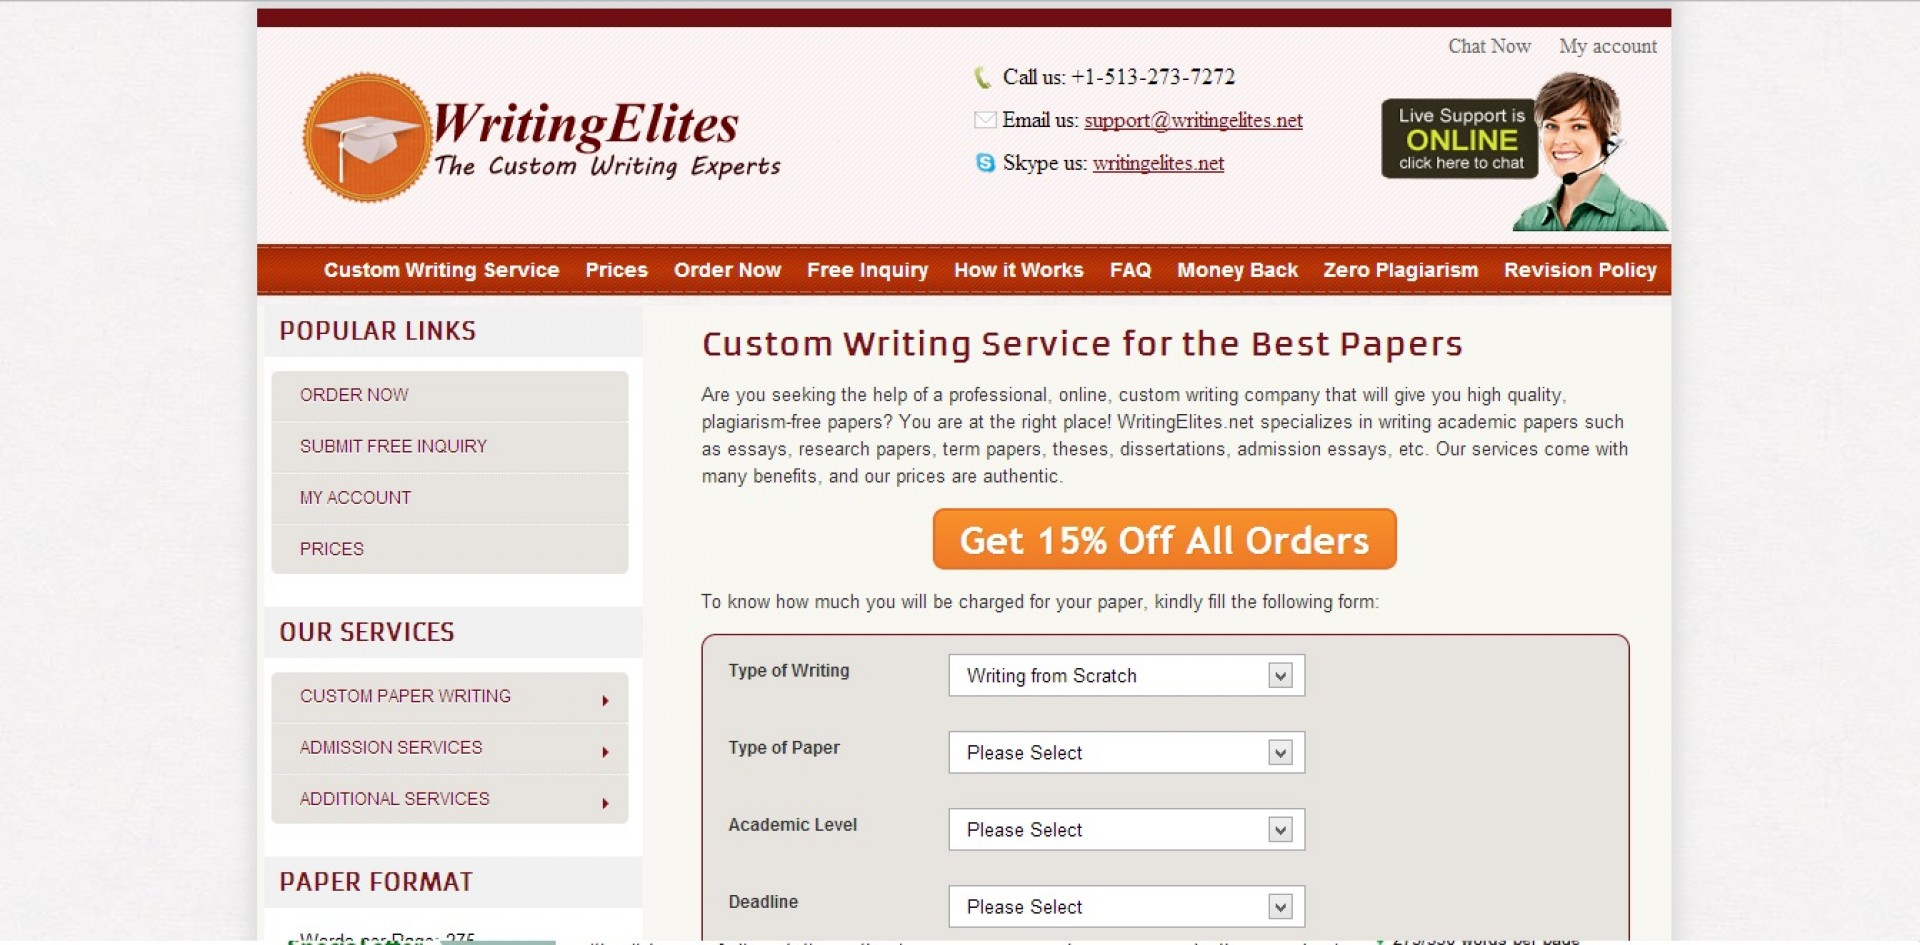 016 Research Paper Best Writing Services In Usa Writingelites Net Top 1920